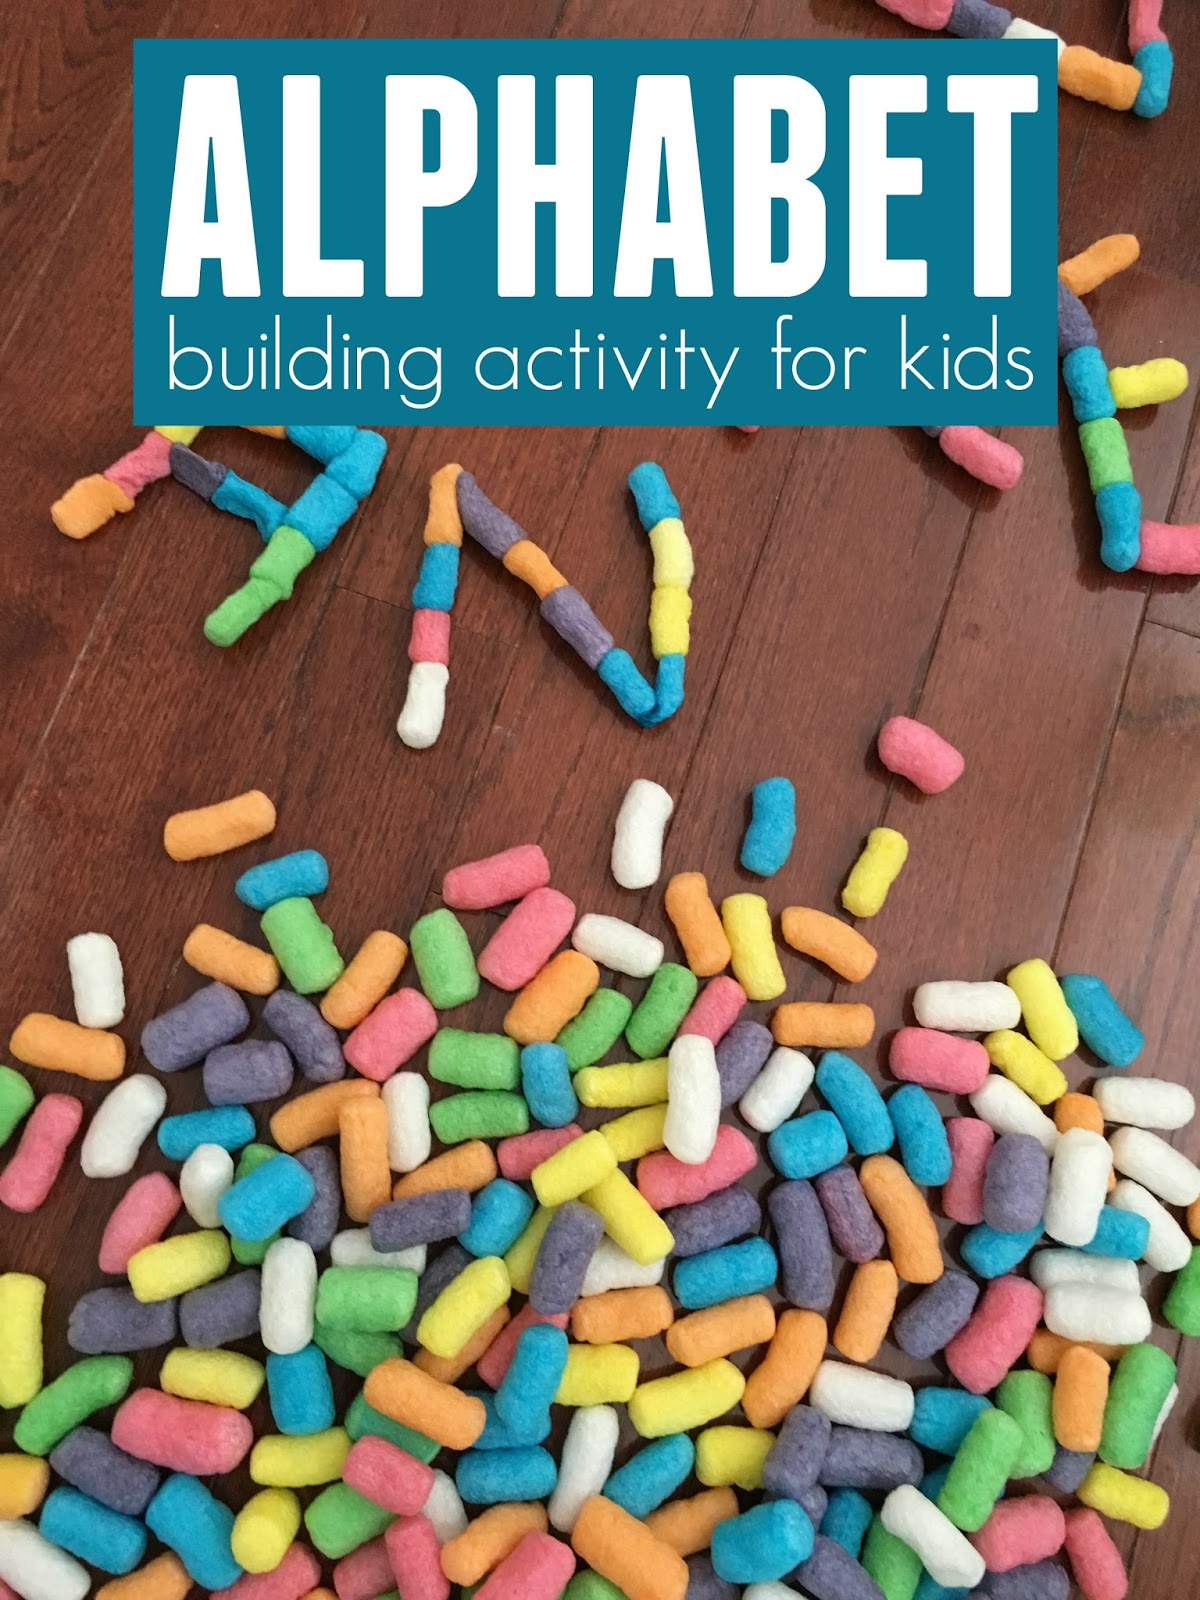 Toddler Approved Alphabet Building Activity For Kids